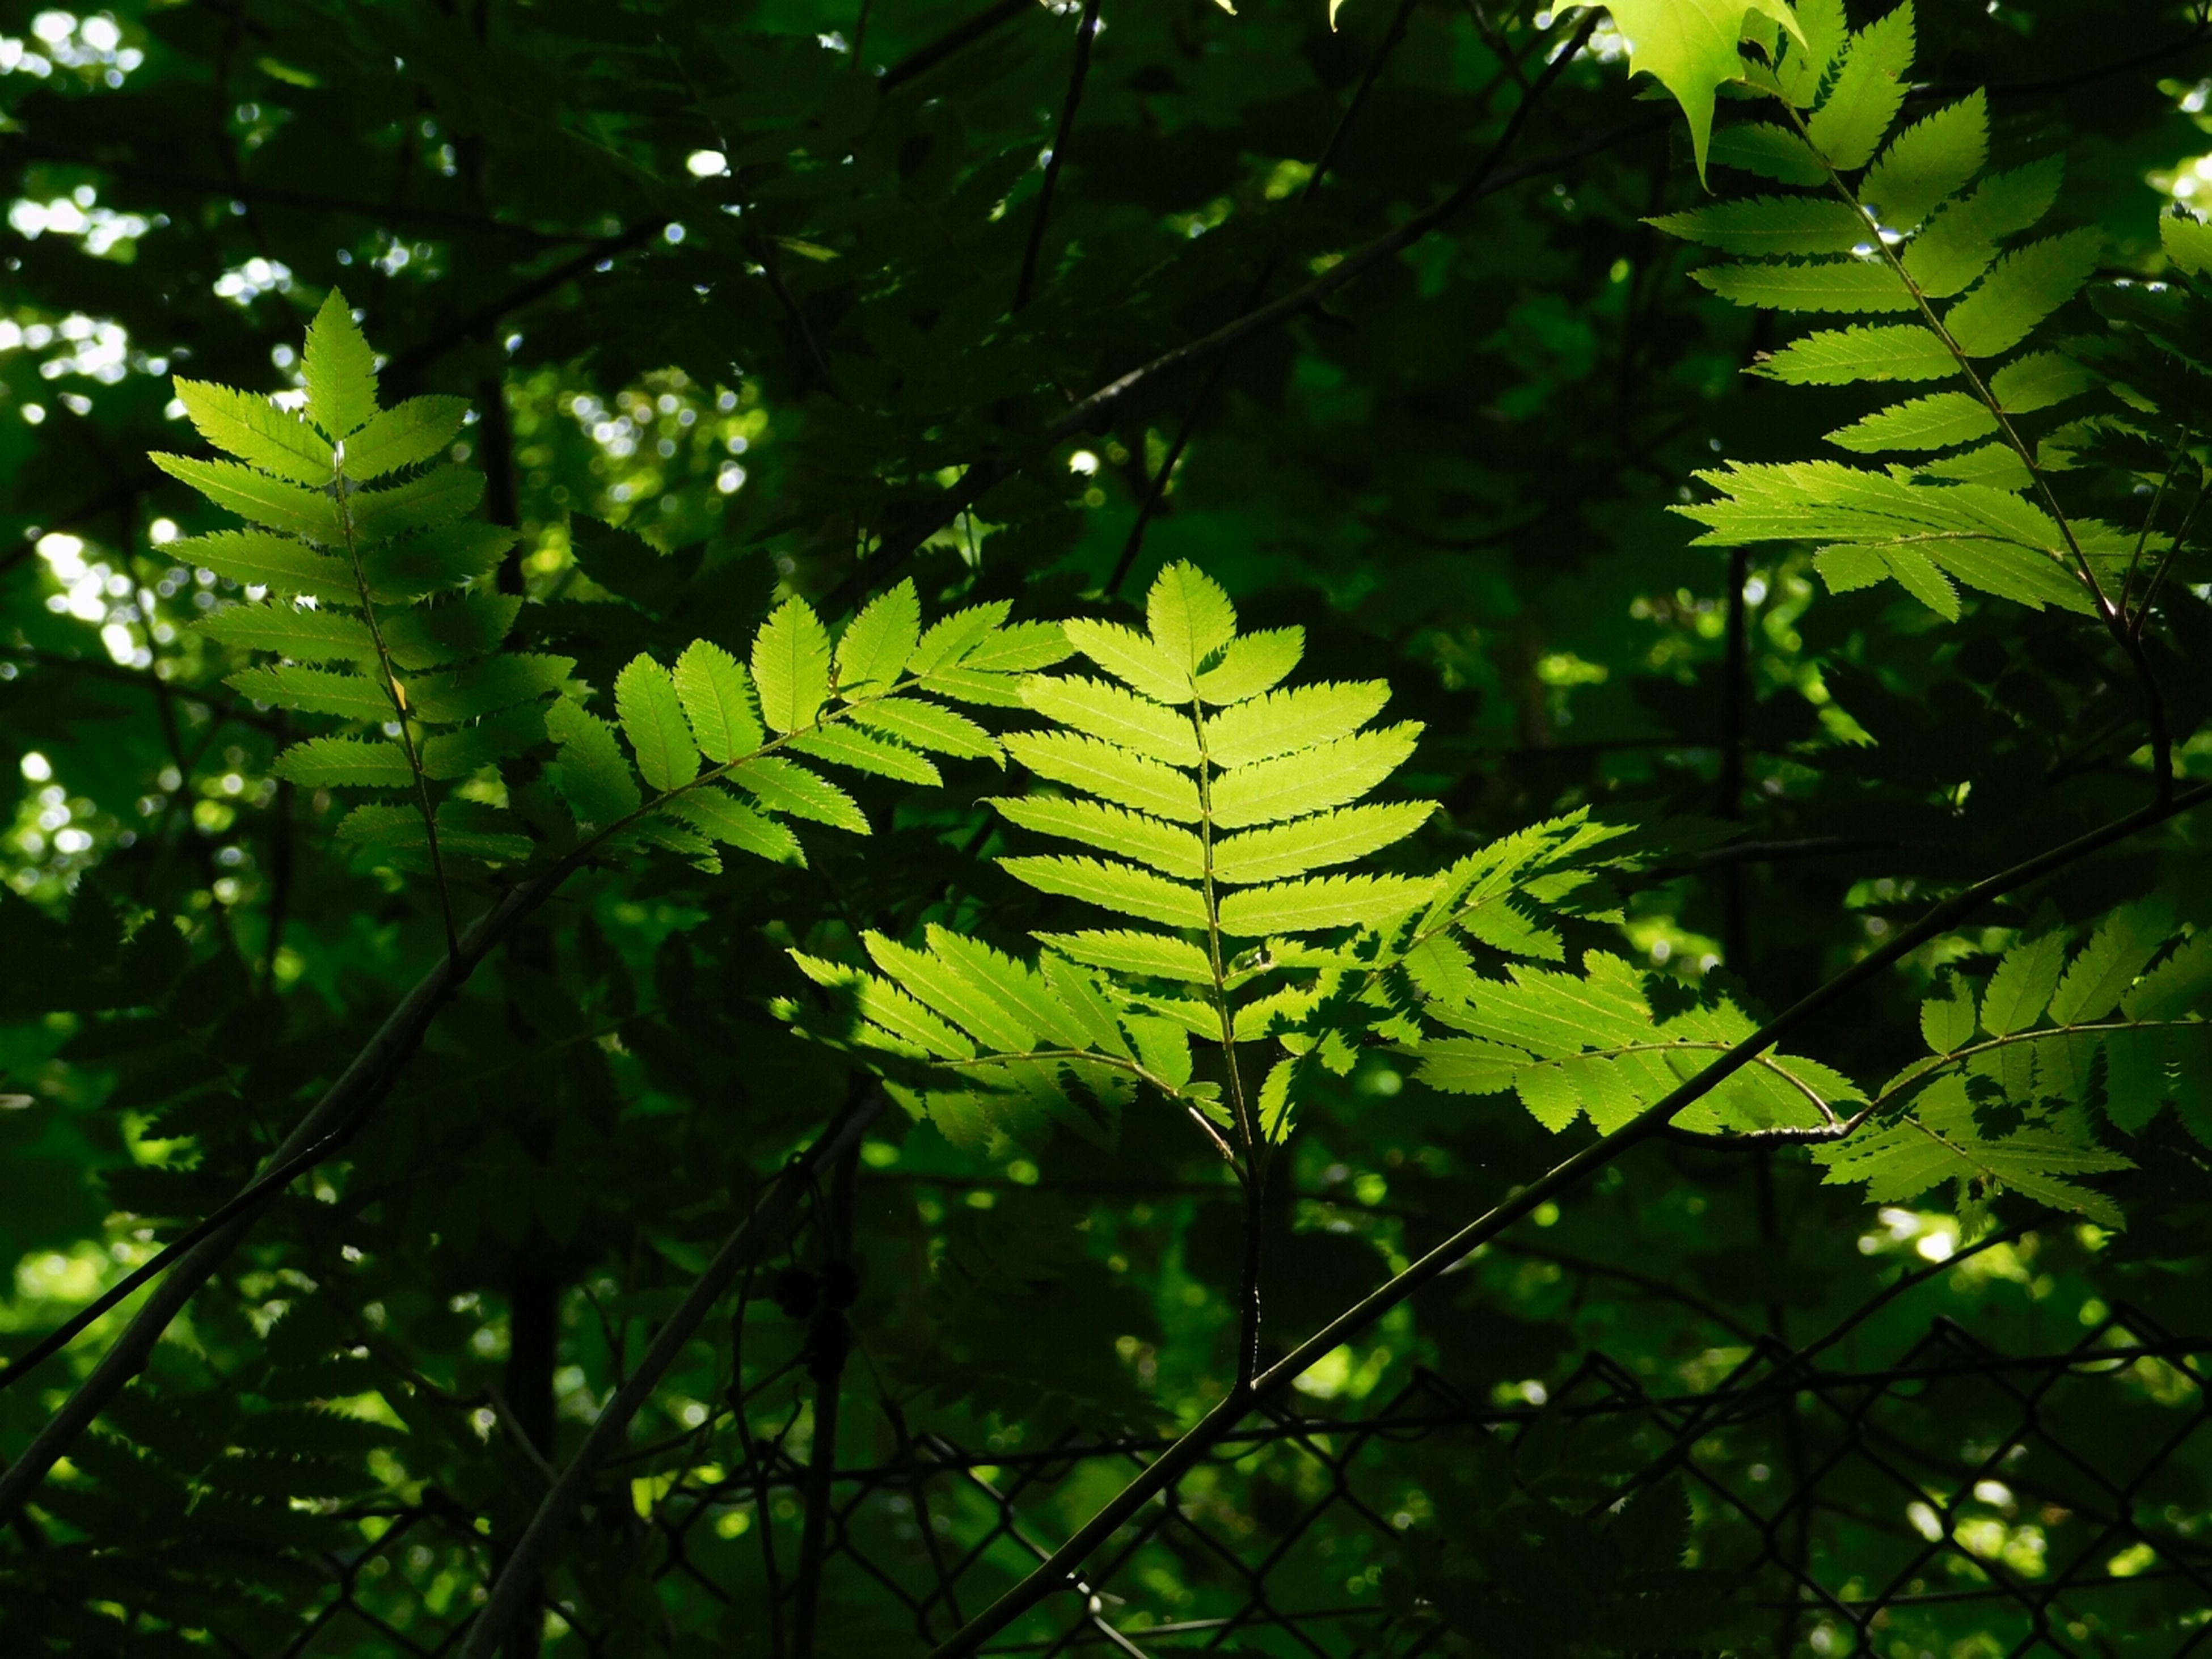 leaf, growth, green color, branch, tree, nature, plant, low angle view, beauty in nature, close-up, freshness, outdoors, green, lush foliage, tranquility, day, no people, sunlight, focus on foreground, growing